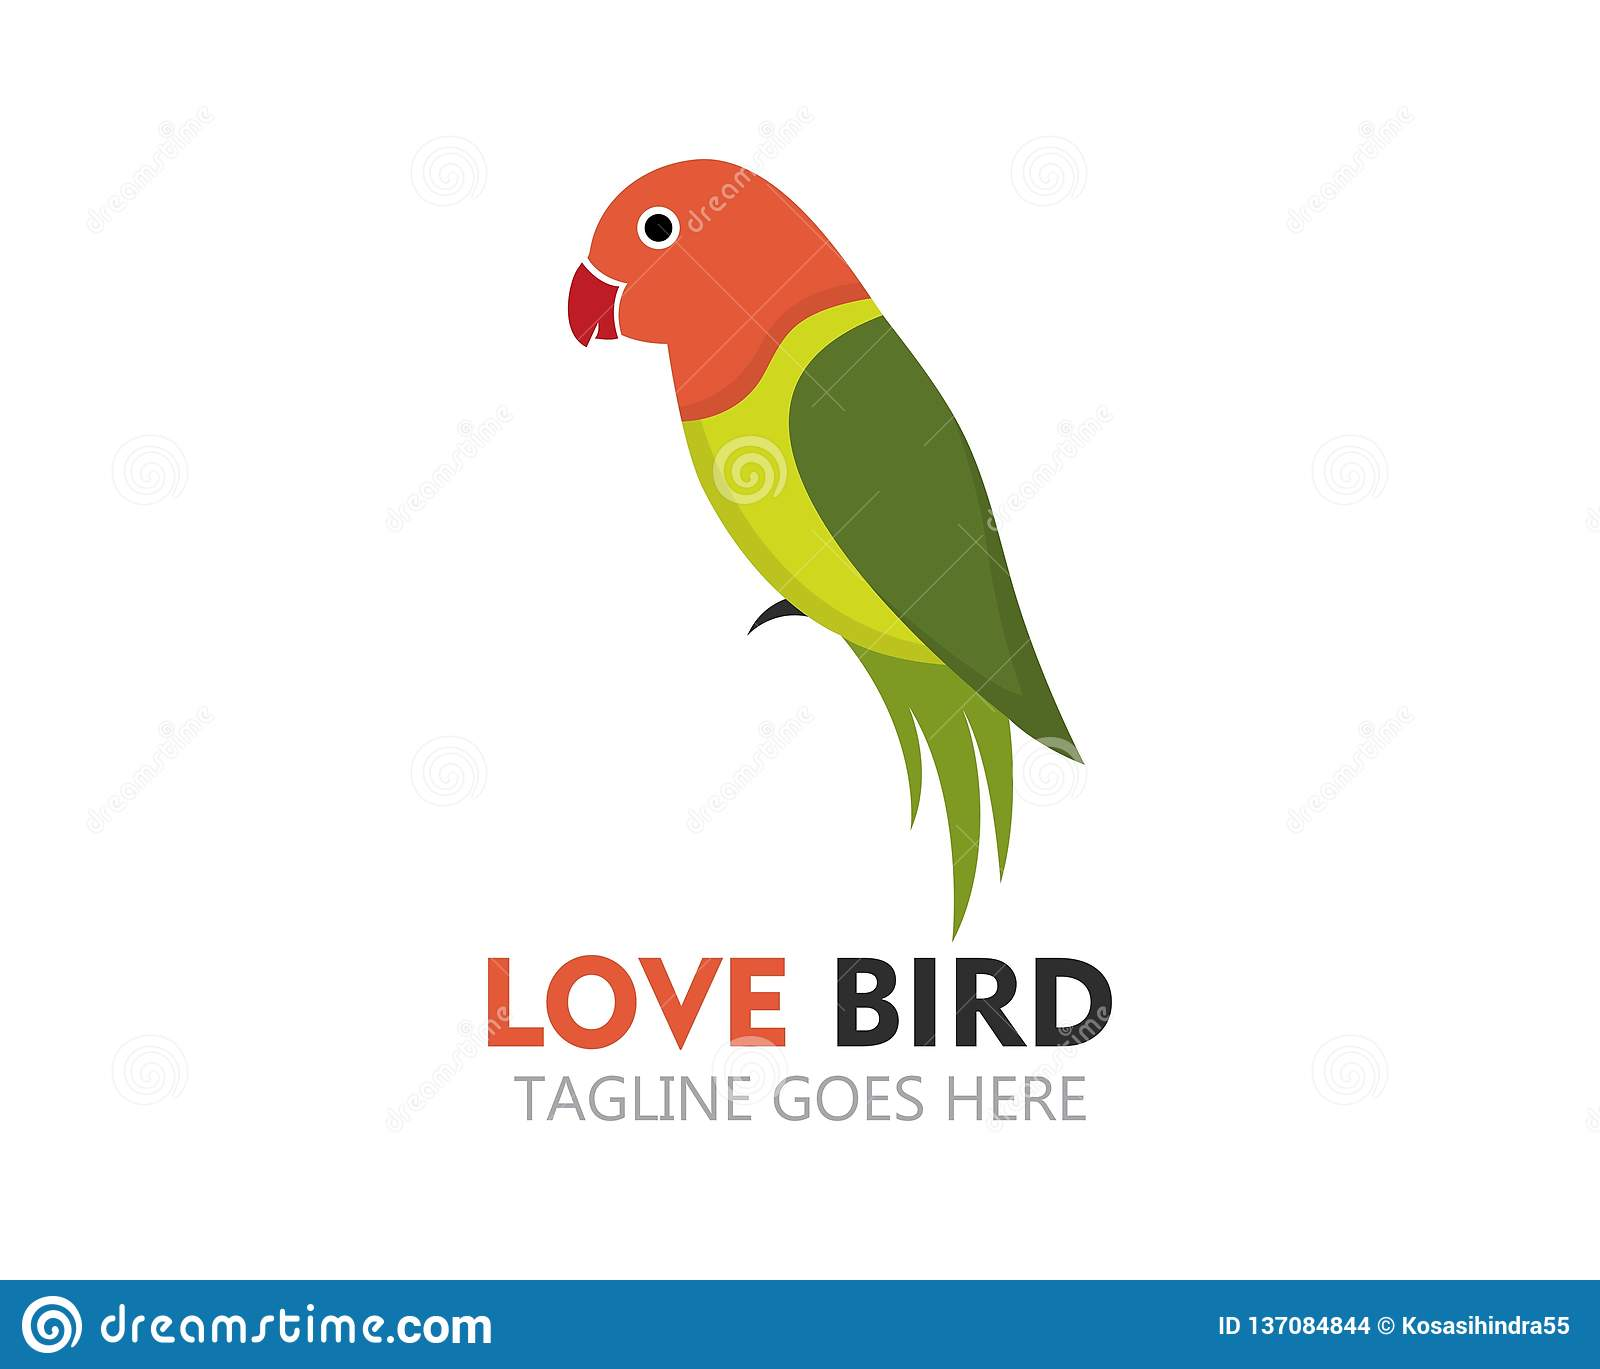 lovebird logo stock illustrations 358 lovebird logo stock illustrations vectors clipart dreamstime https www dreamstime com beauty lovebird logo vector icon template beauty lovebird logo image137084844